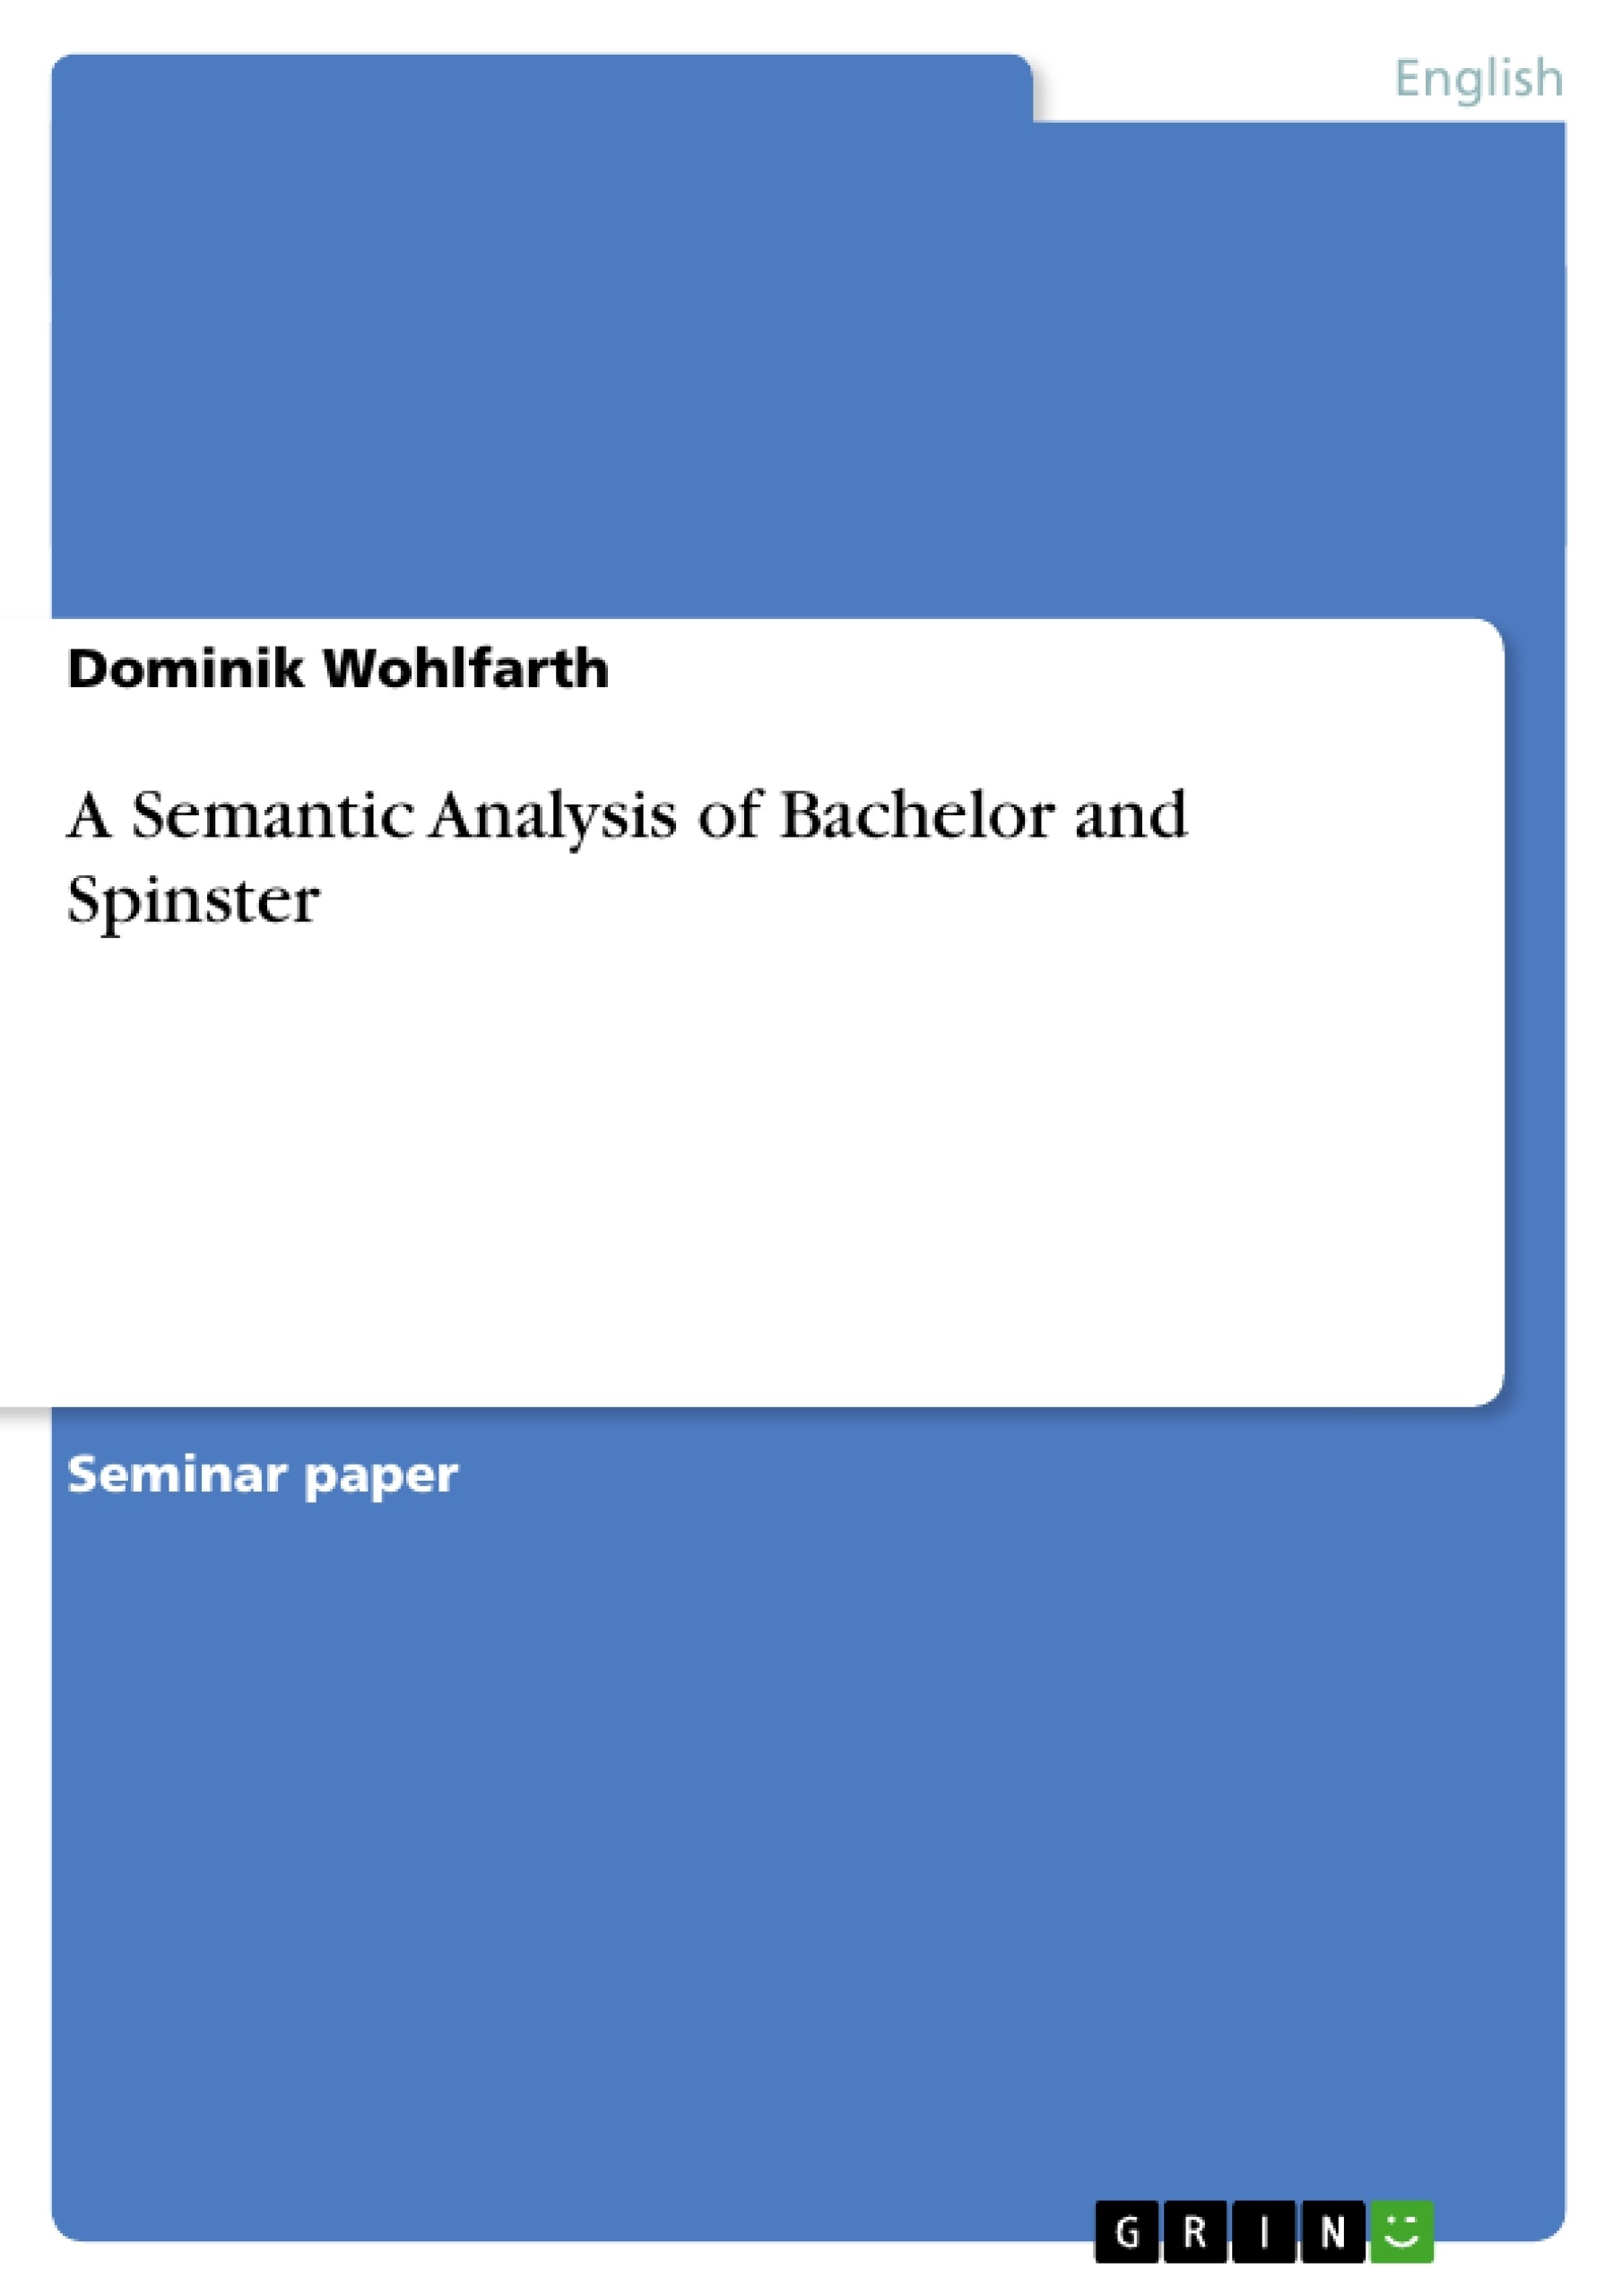 Title: A Semantic Analysis of Bachelor and Spinster